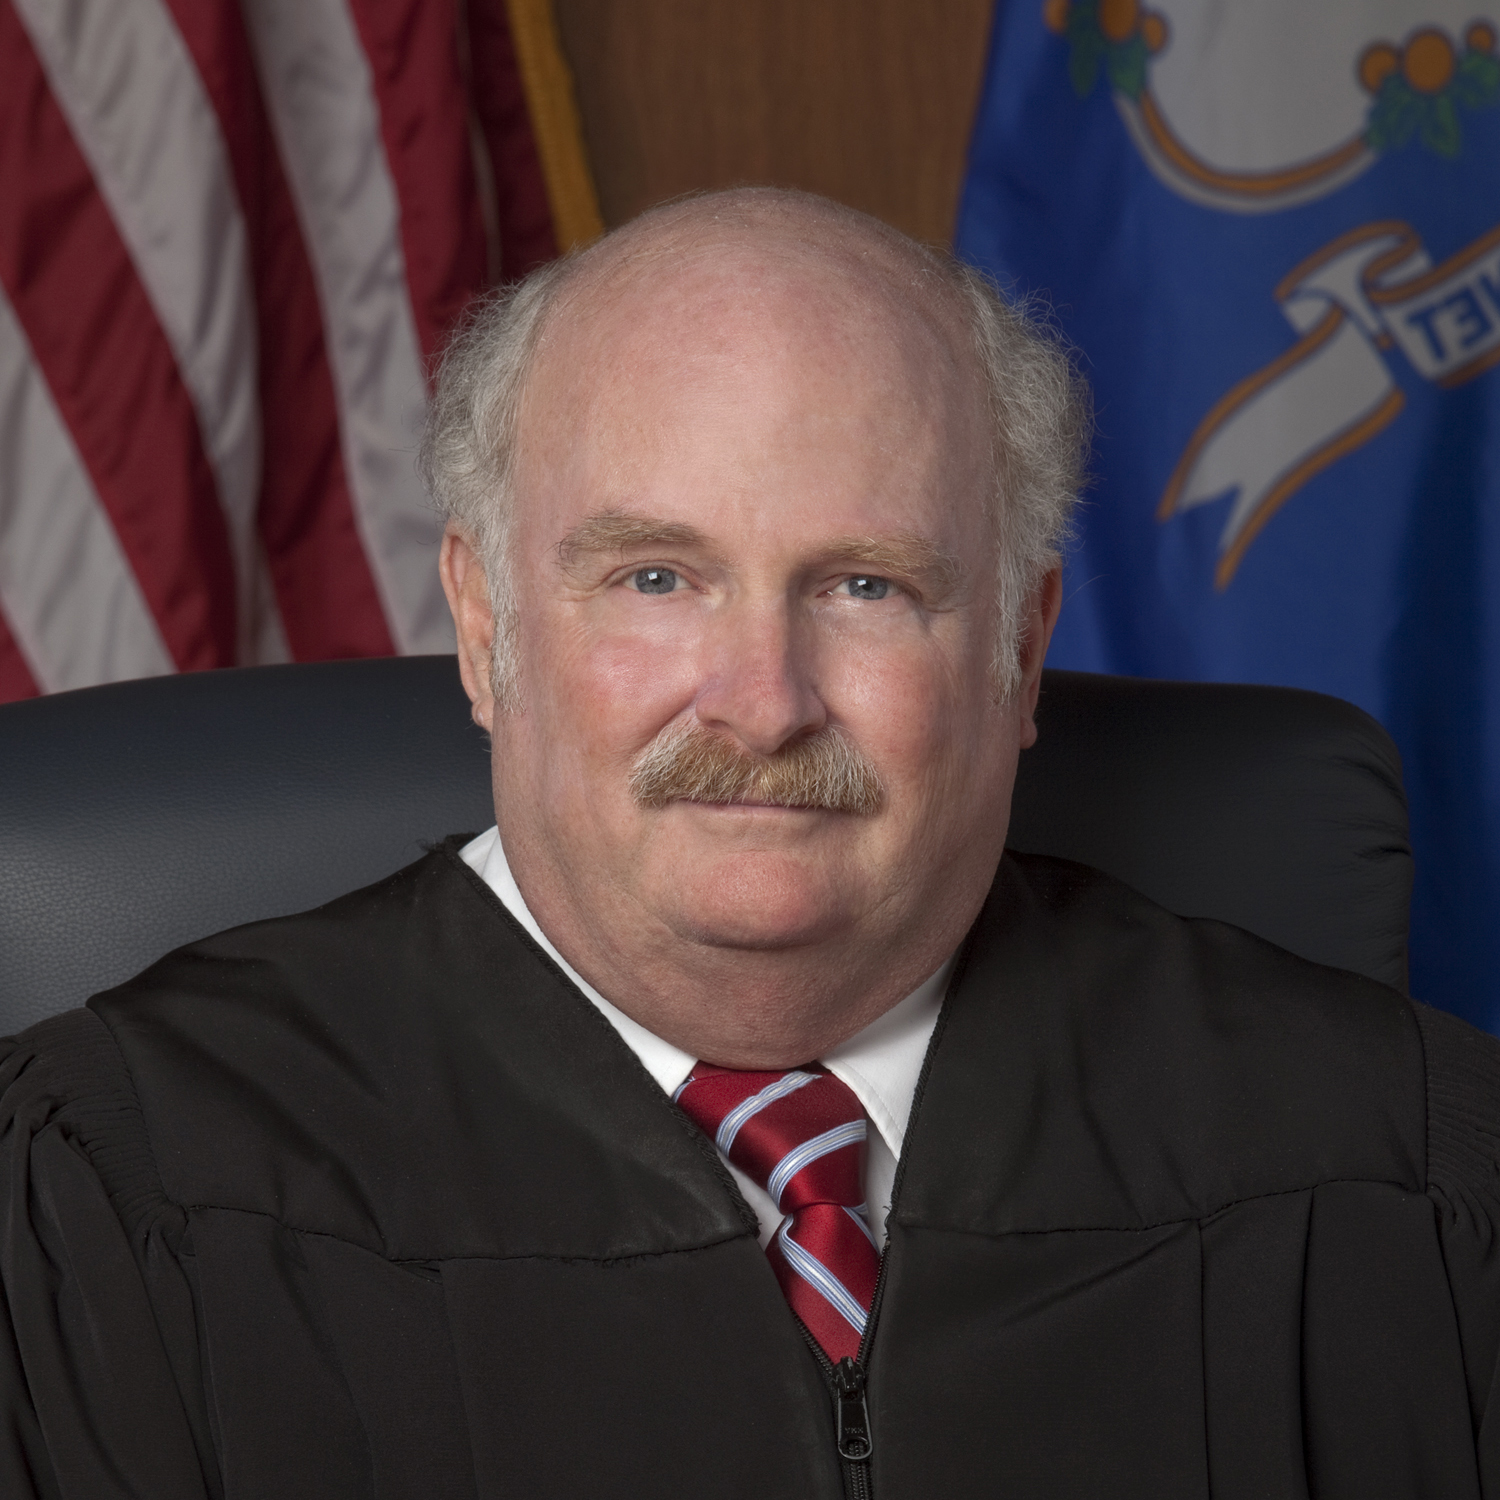 Retired Connecticut Appellate Court Judge Michael R. Sheldon presented the keynote speech for Law Day.